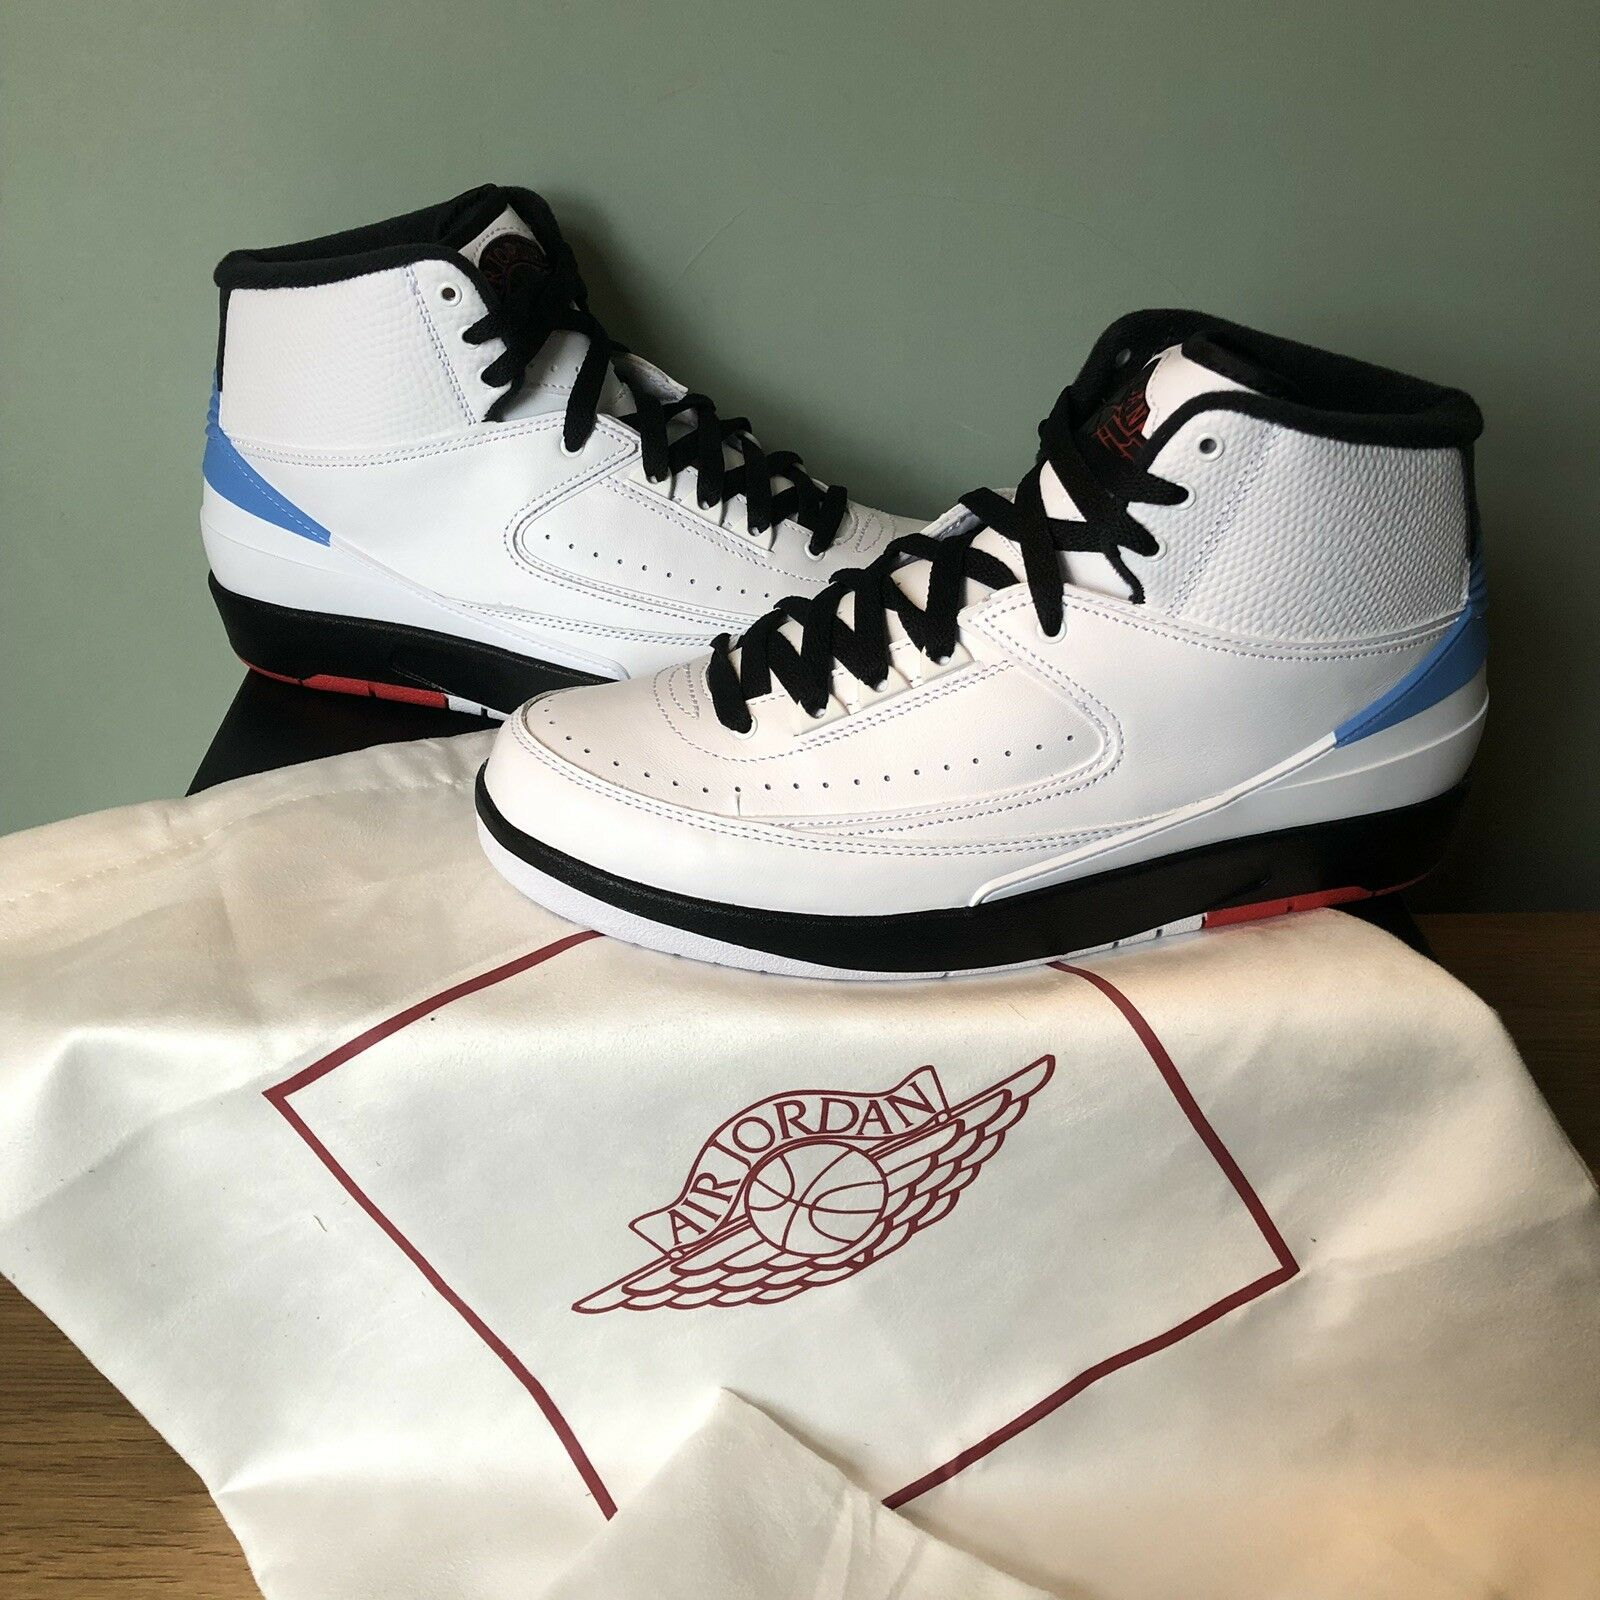 Nike Air Jordan 2 Retro Alumni UNC UK8.5 US9.5 EU43 Brand New  917360-105